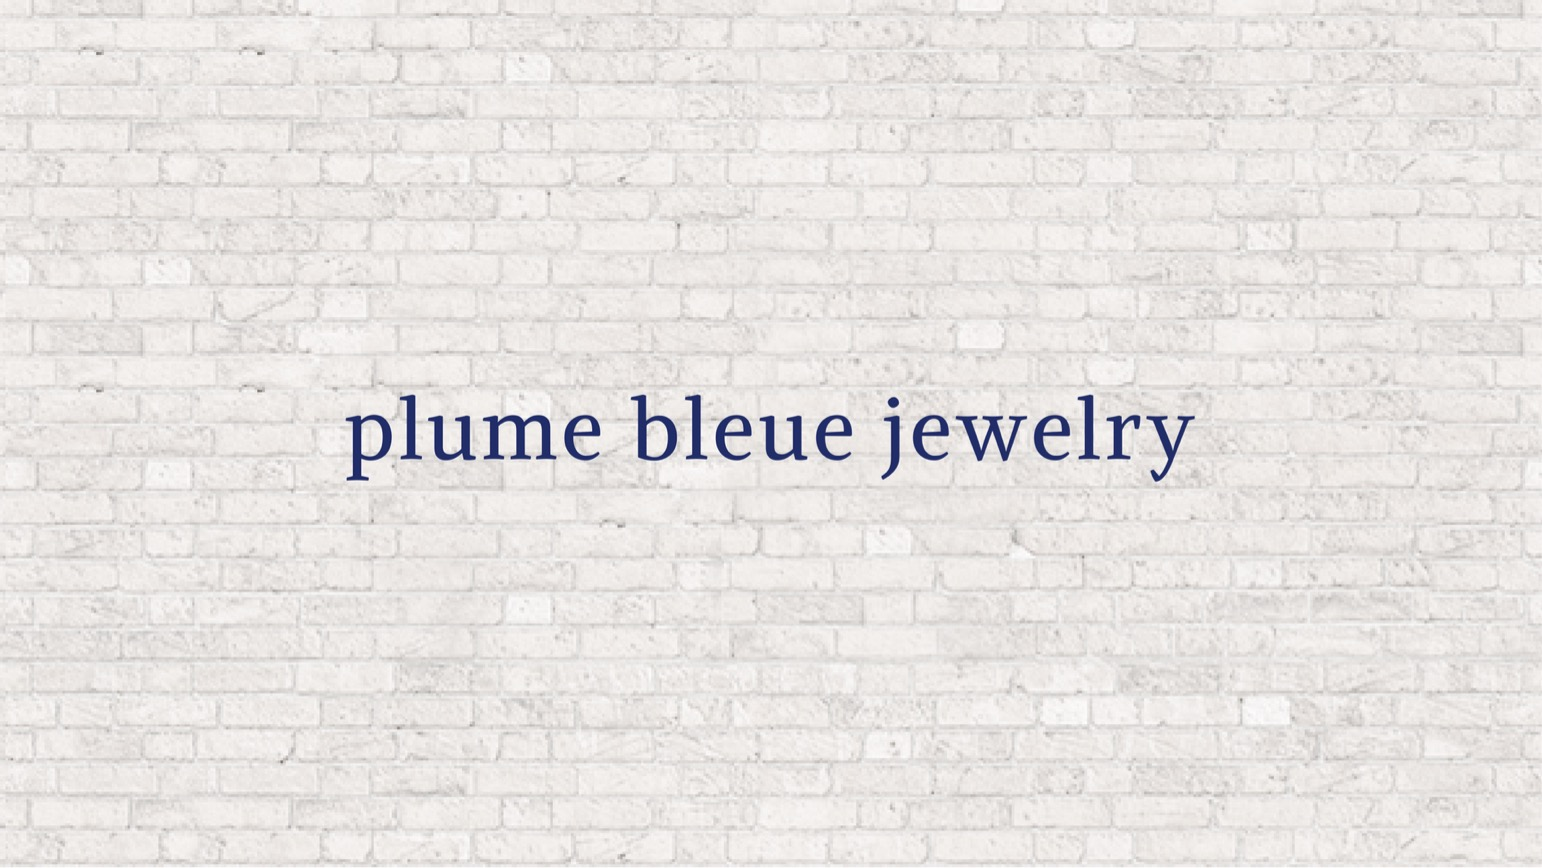 plume bleue jewelry | 金属アレルギー対応アクセ取り扱いSHOP紹介画像1